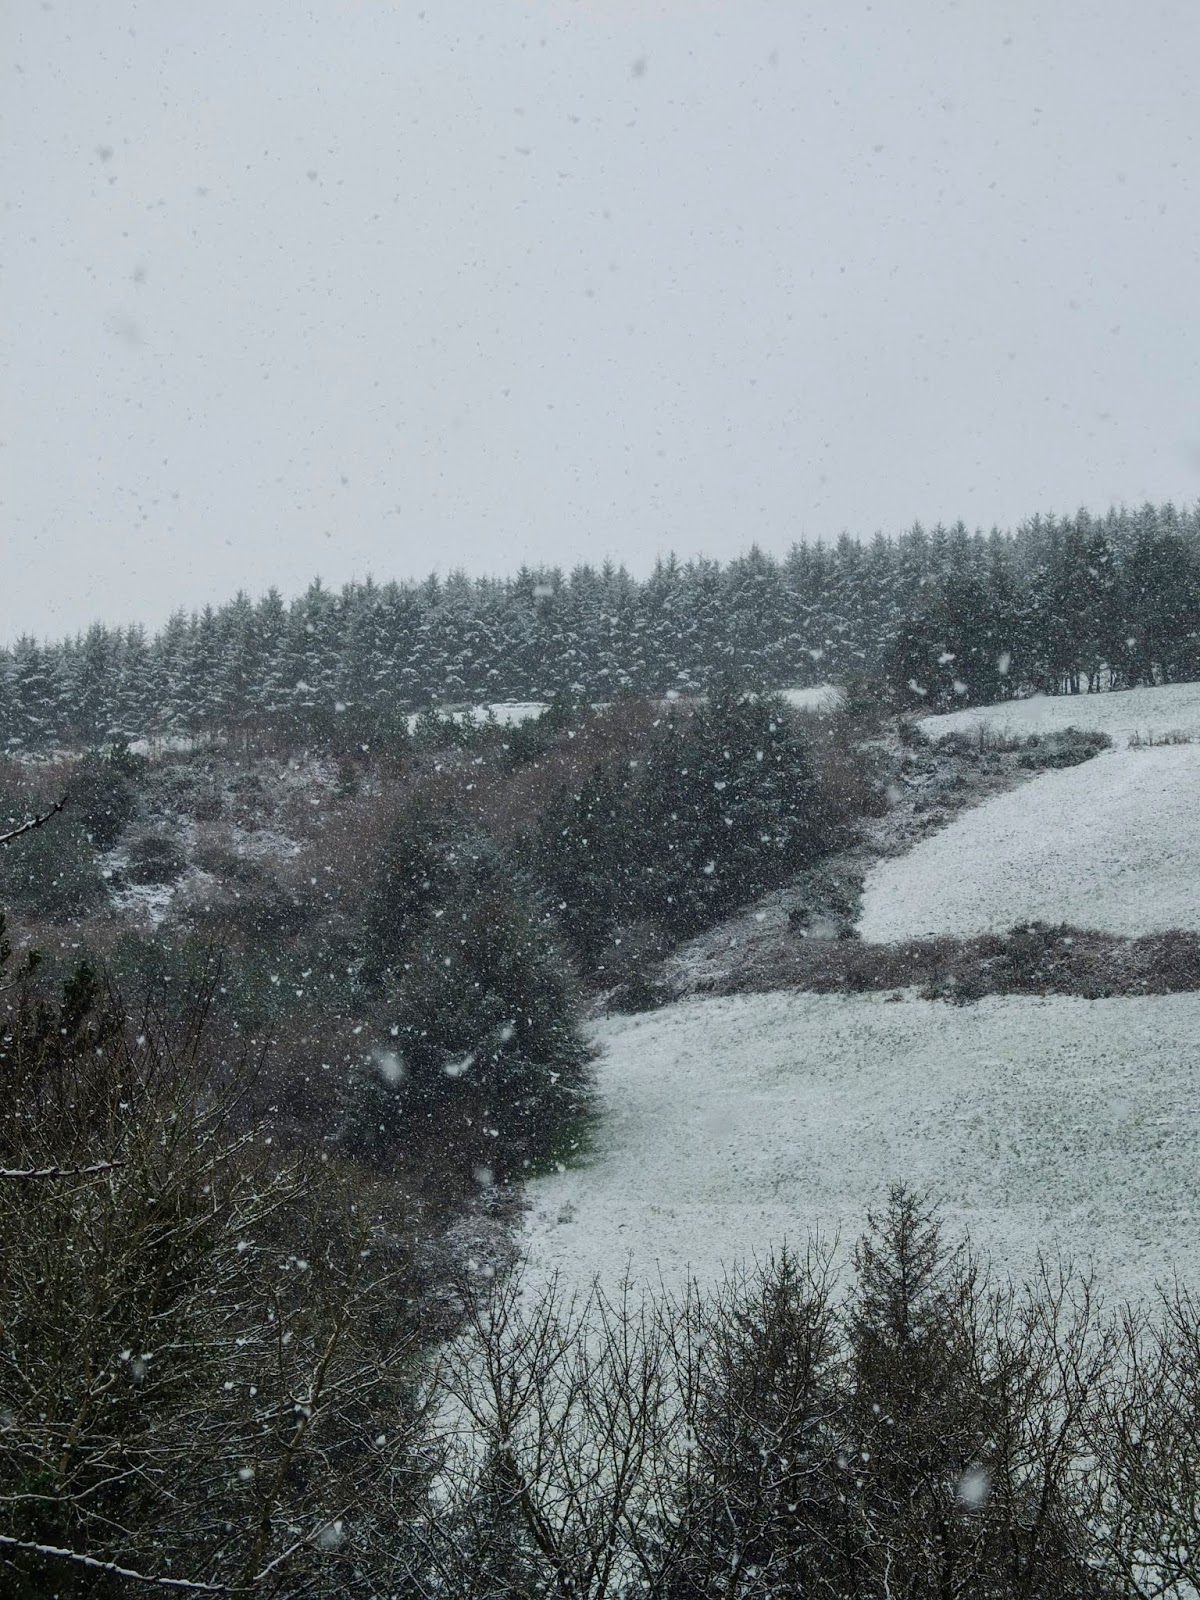 Snow beginning to fall on trees and fields on a hillside in Duhallow .